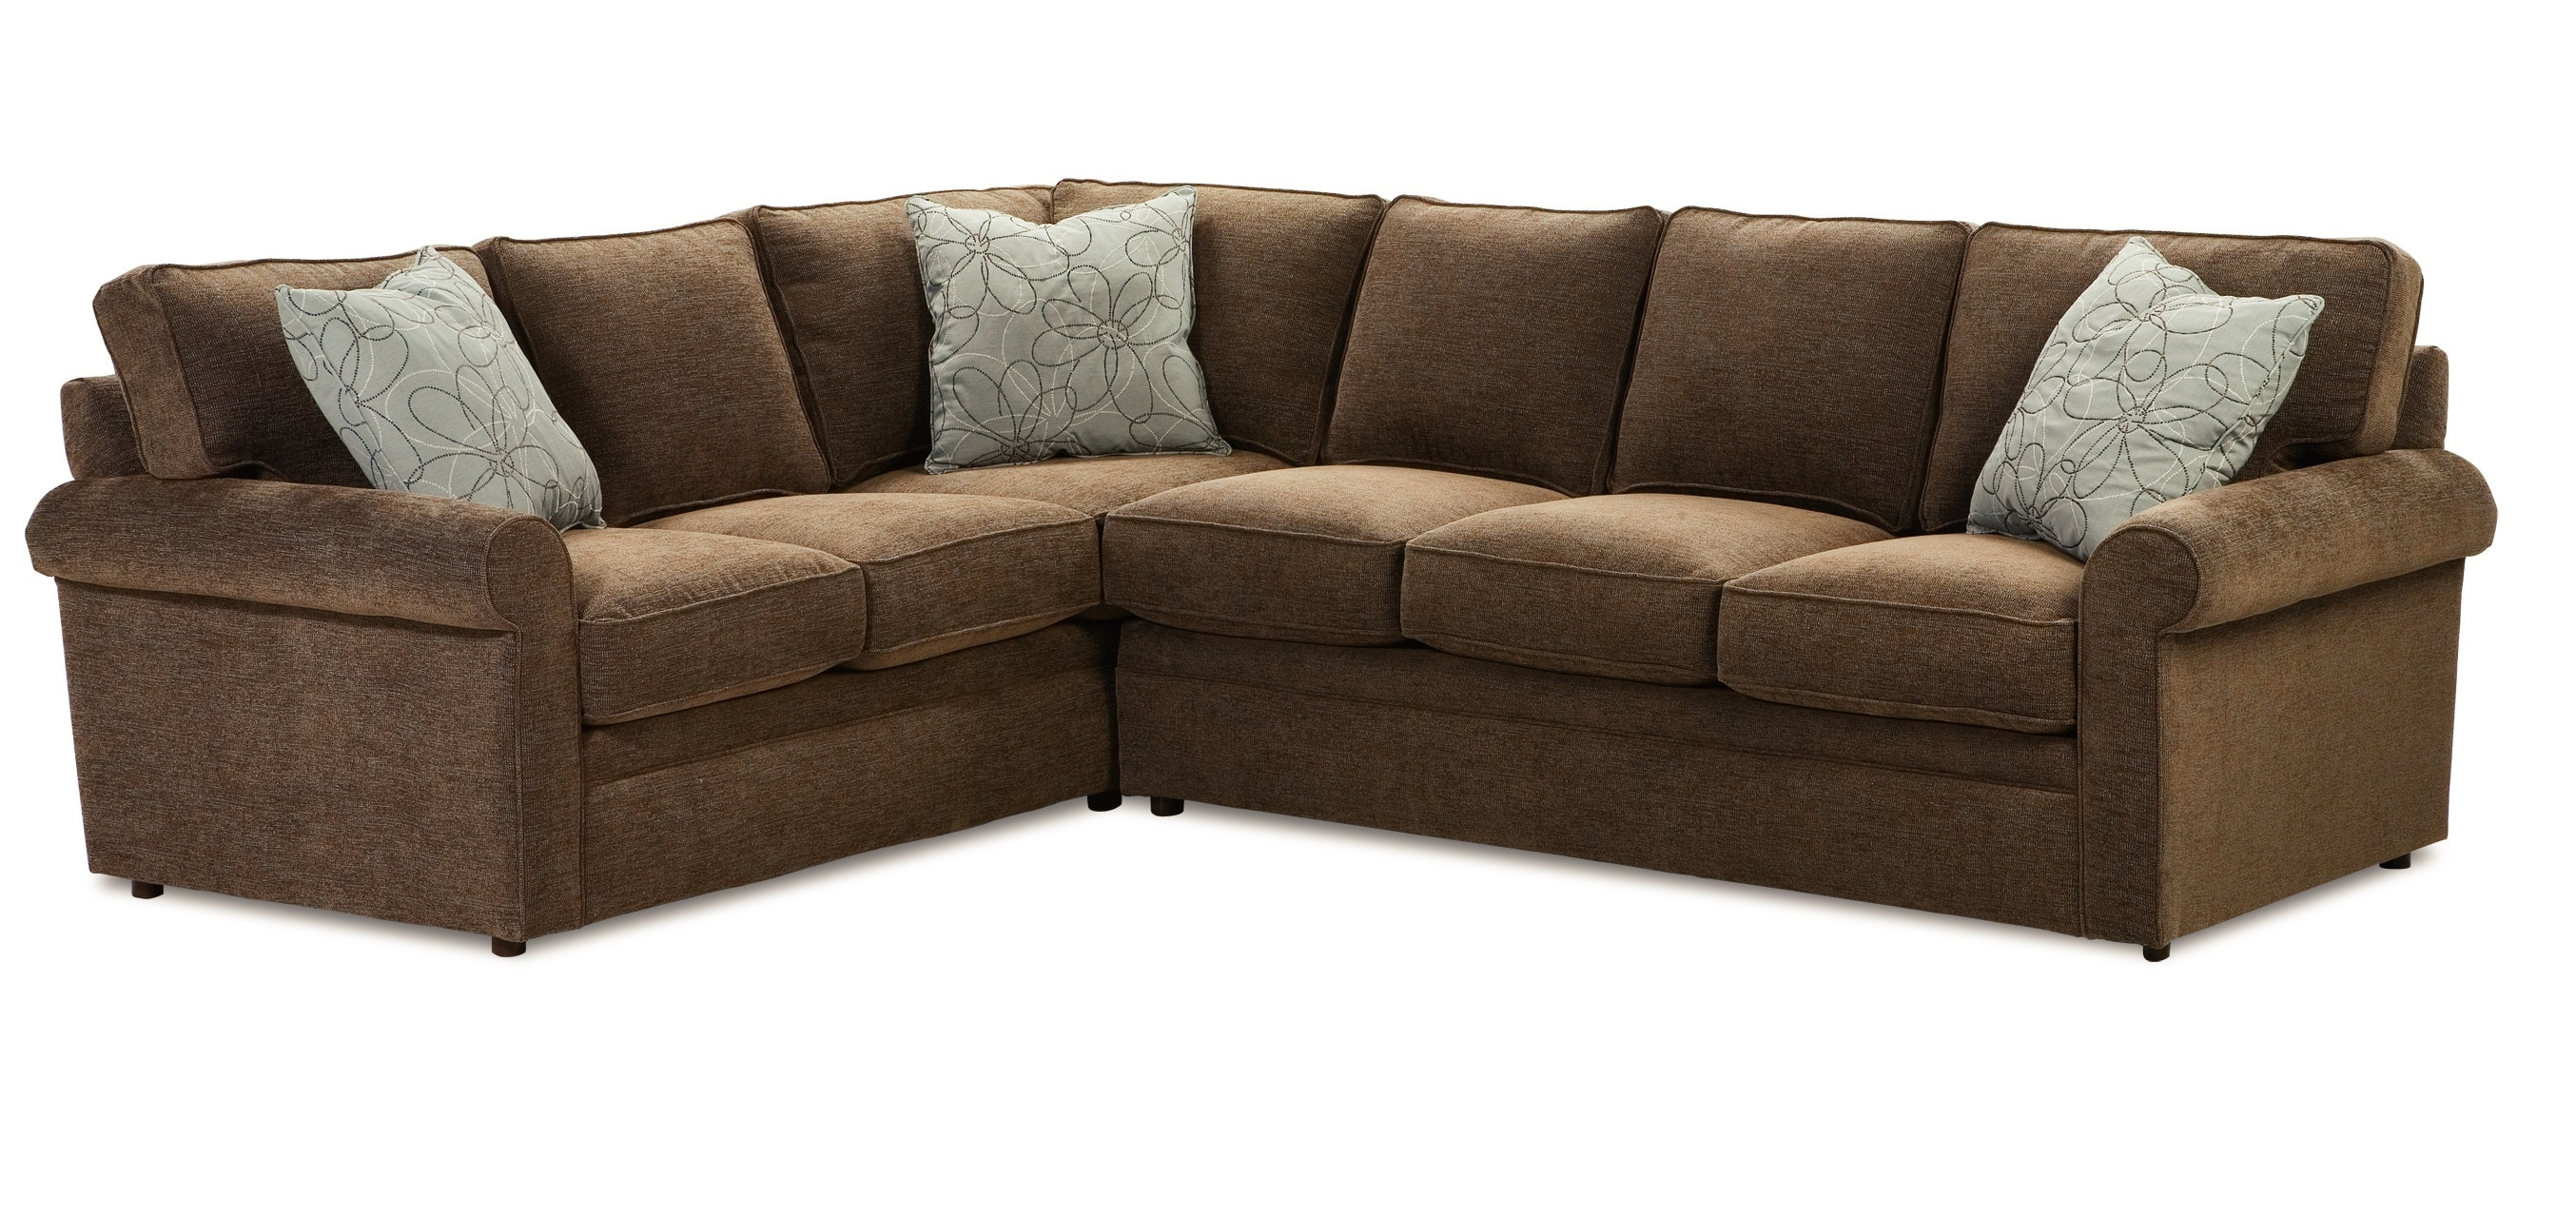 leather living room furniture sectionals design ideas orange walls sectional sofas high point rowe brentwood 9252 sect